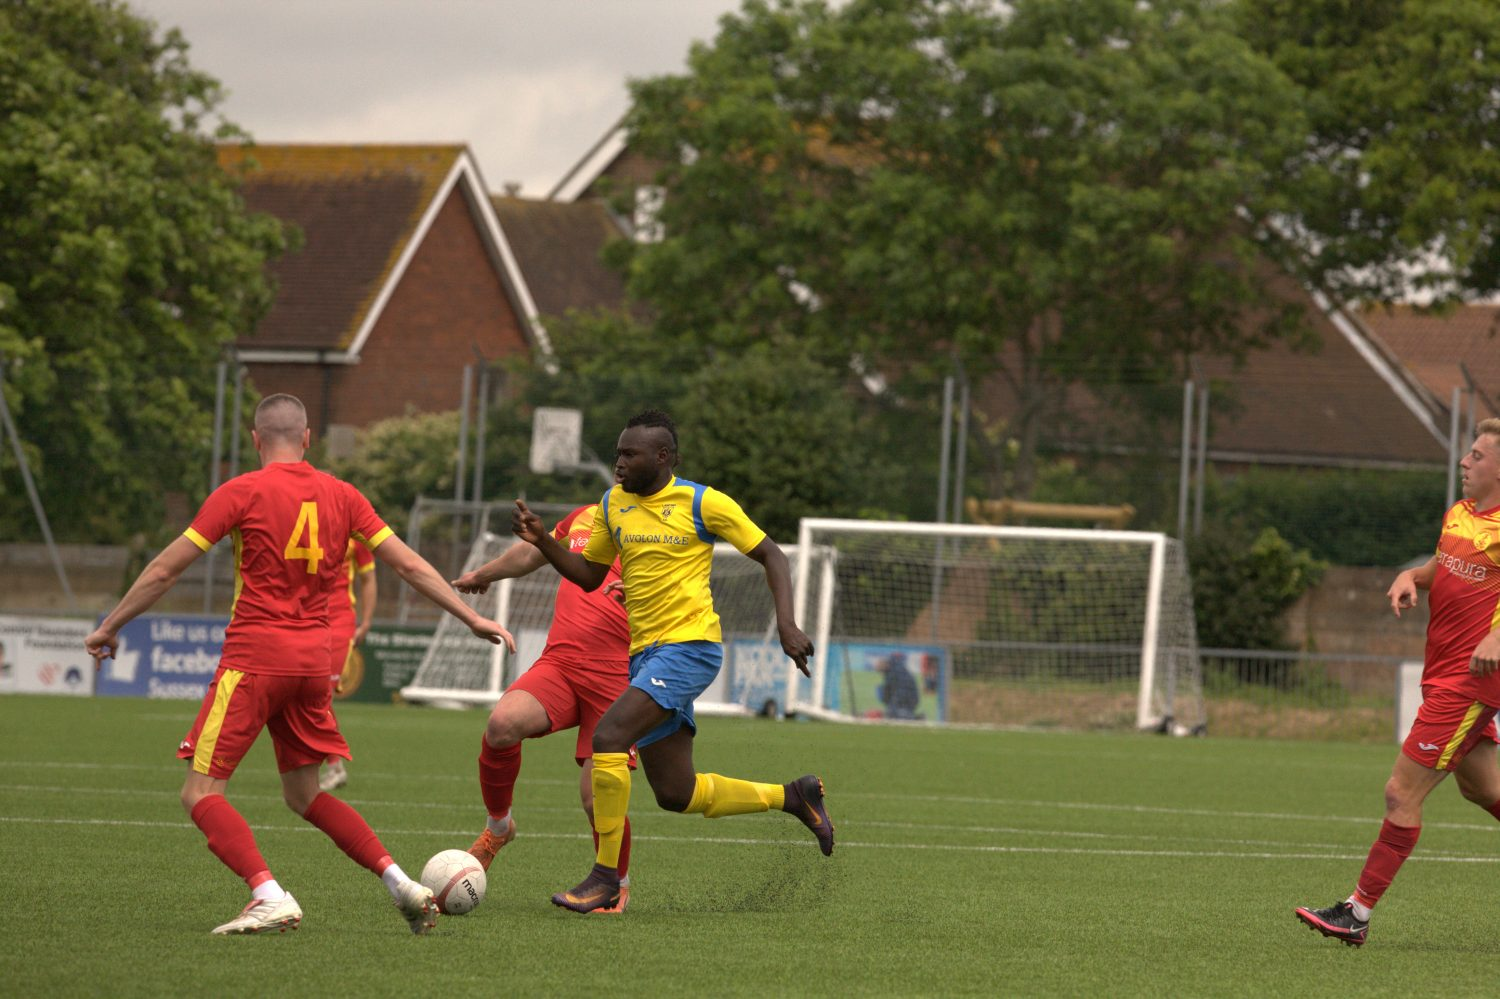 Gallery: Lancing 2-1 Newhaven